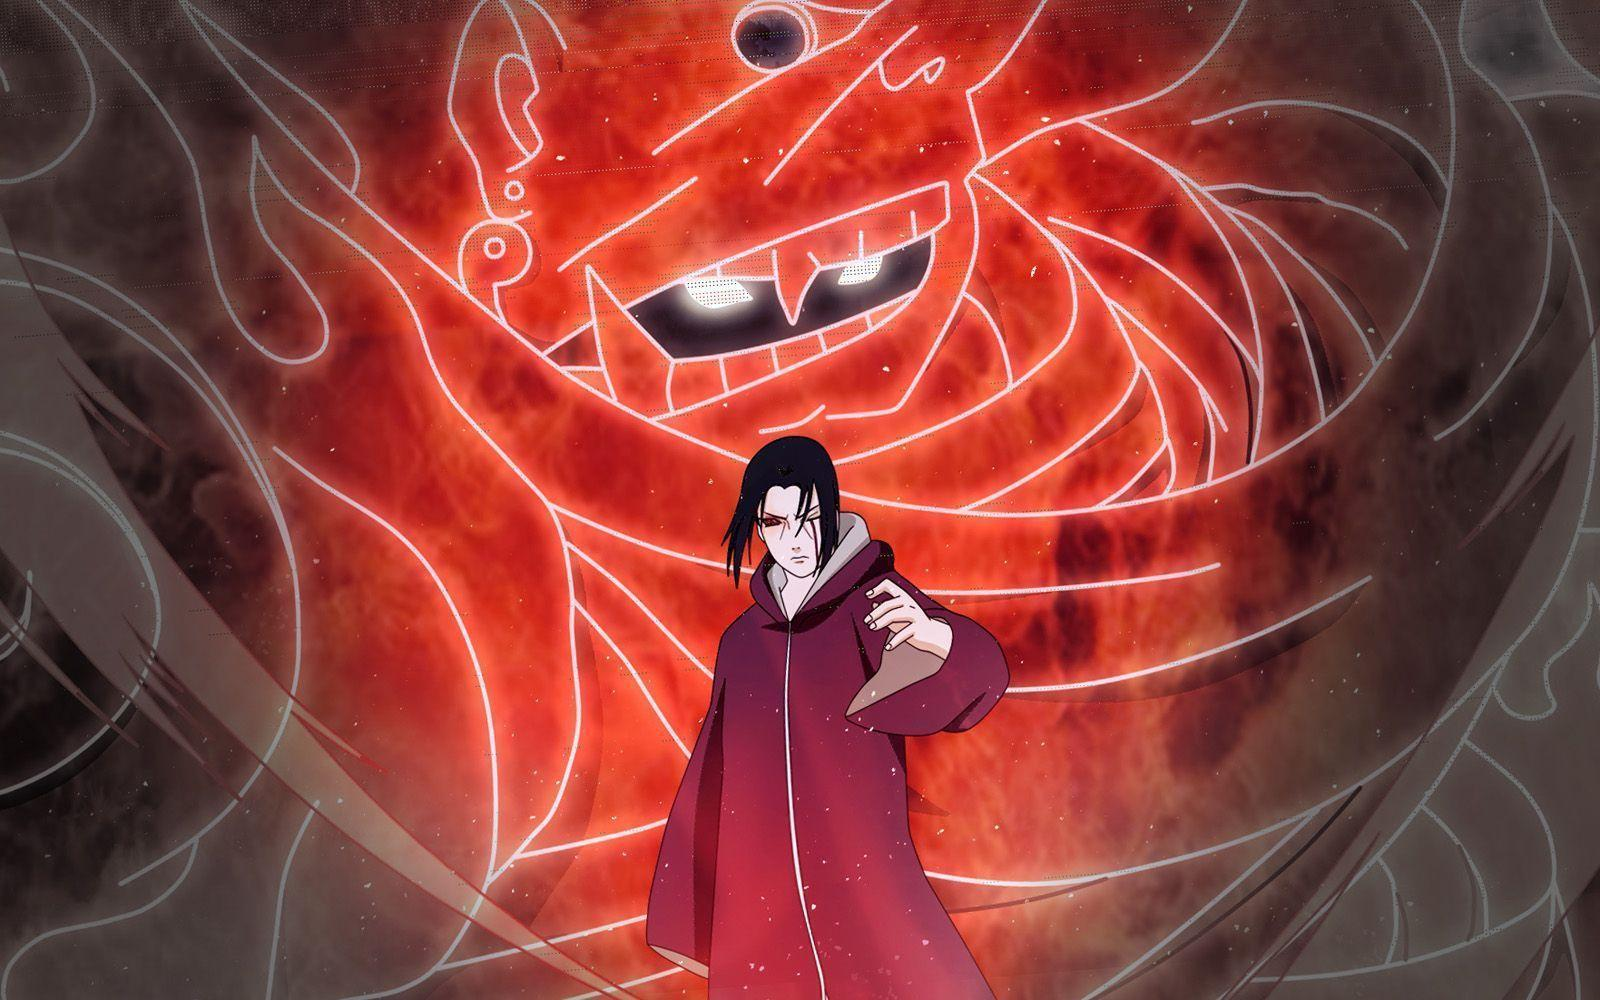 Itachi Uchiha Susanoo Wallpapers Top Free Itachi Uchiha